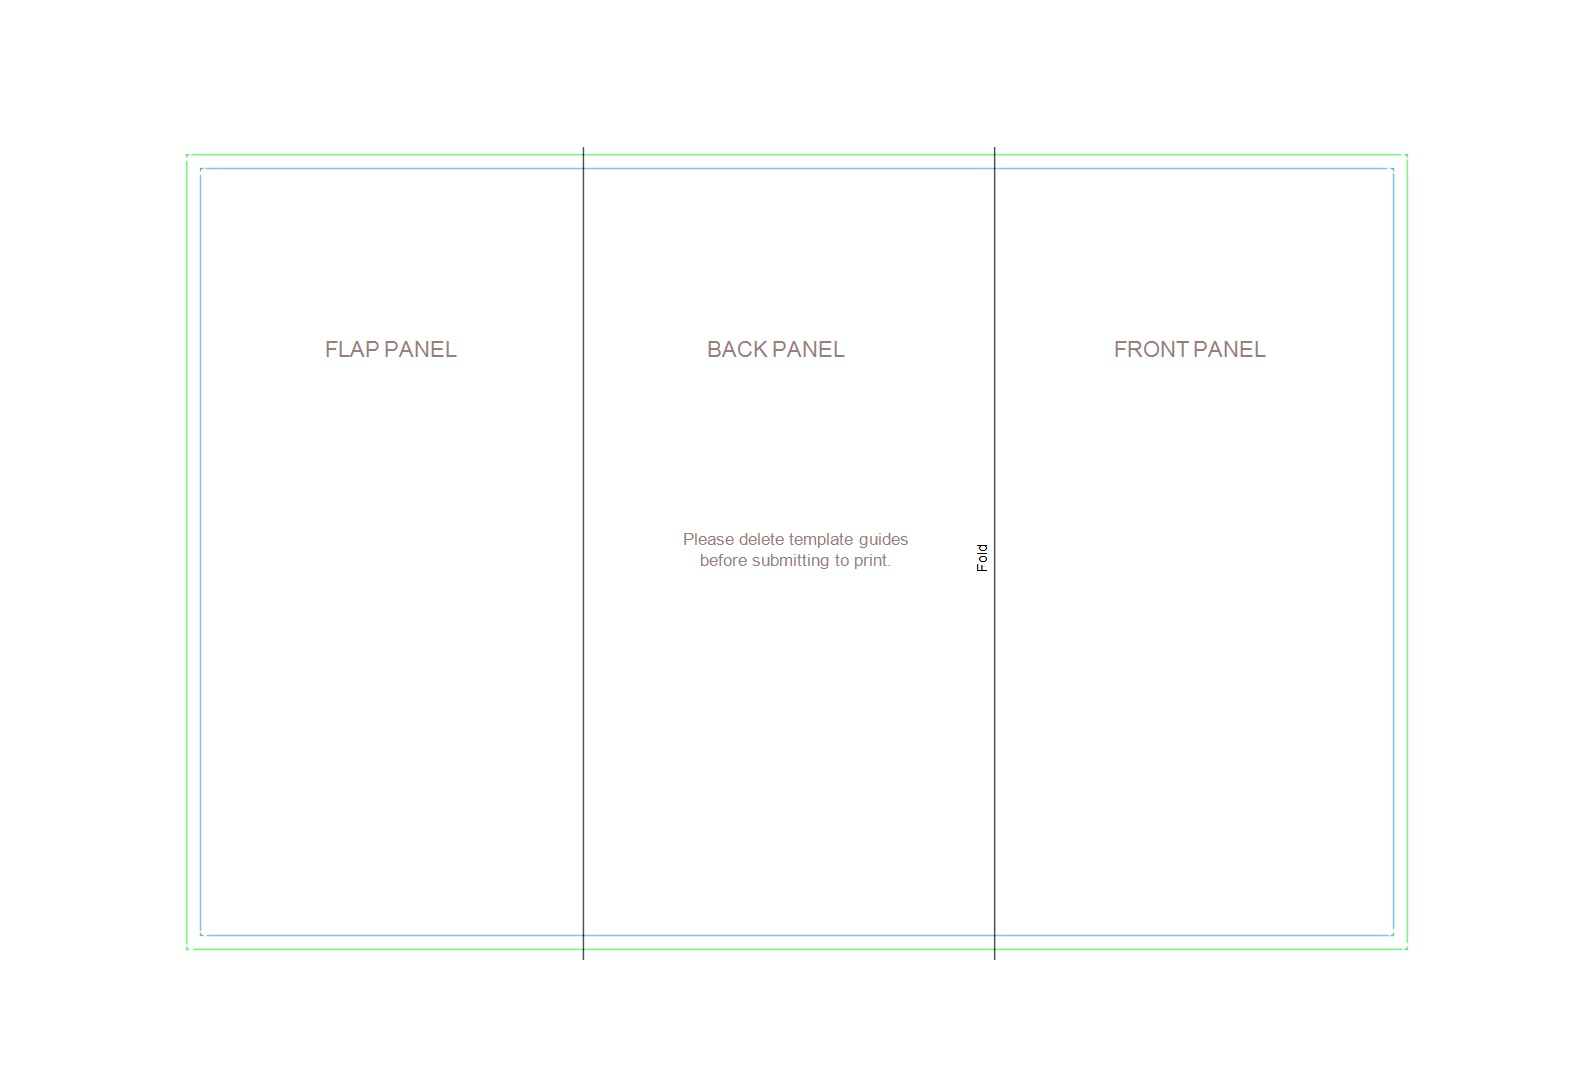 50 Free Pamphlet Templates [Word / Google Docs] ᐅ Template Lab Throughout Brochure Templates Google Docs